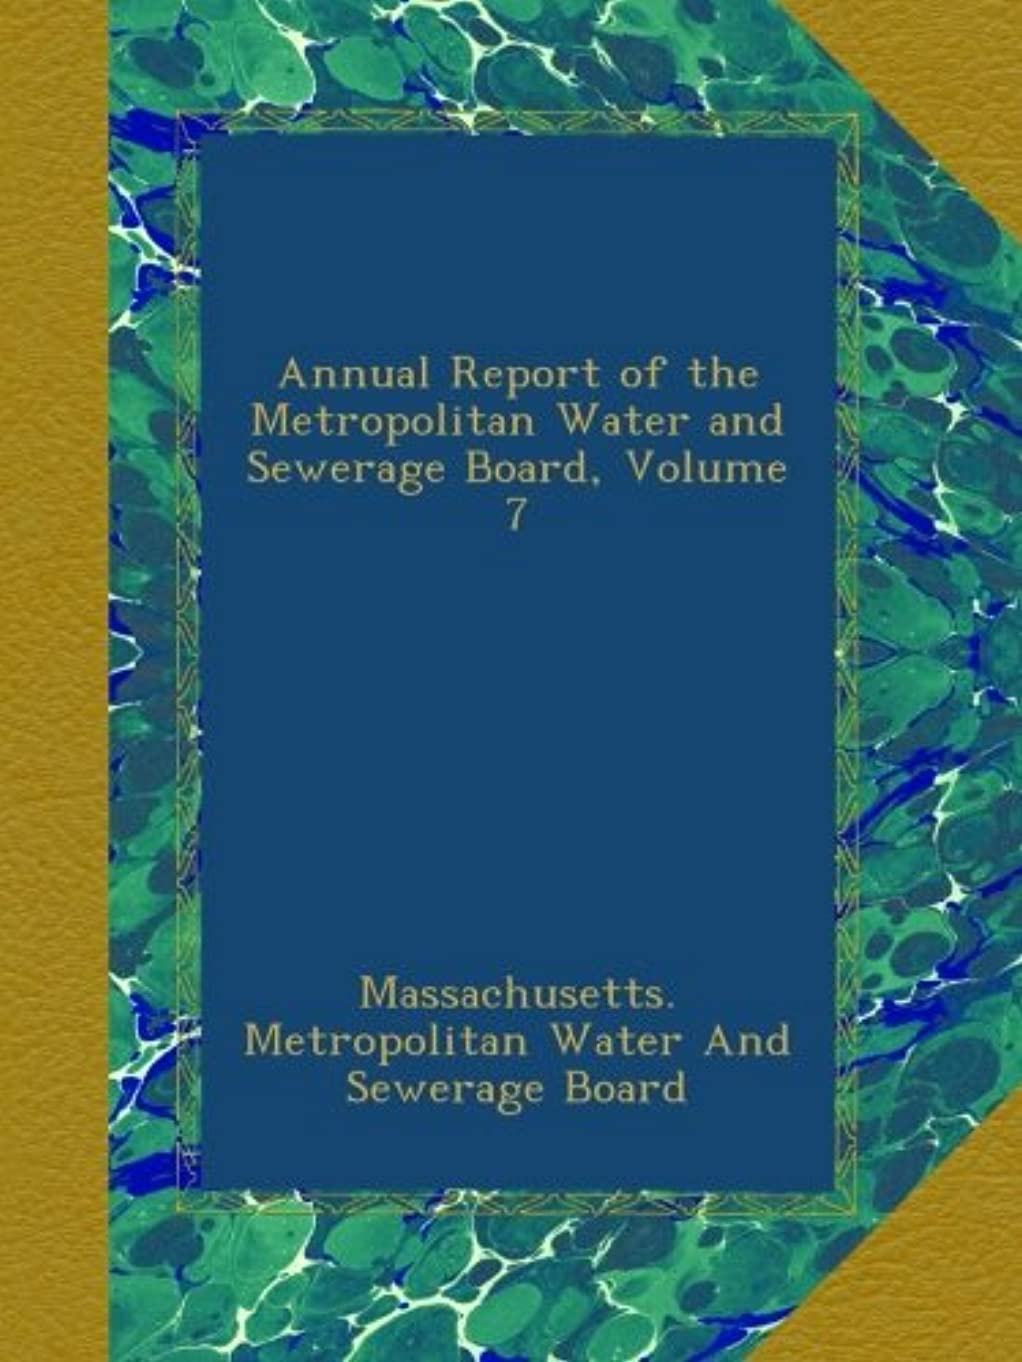 Annual Report of the Metropolitan Water and Sewerage Board, Volume 7